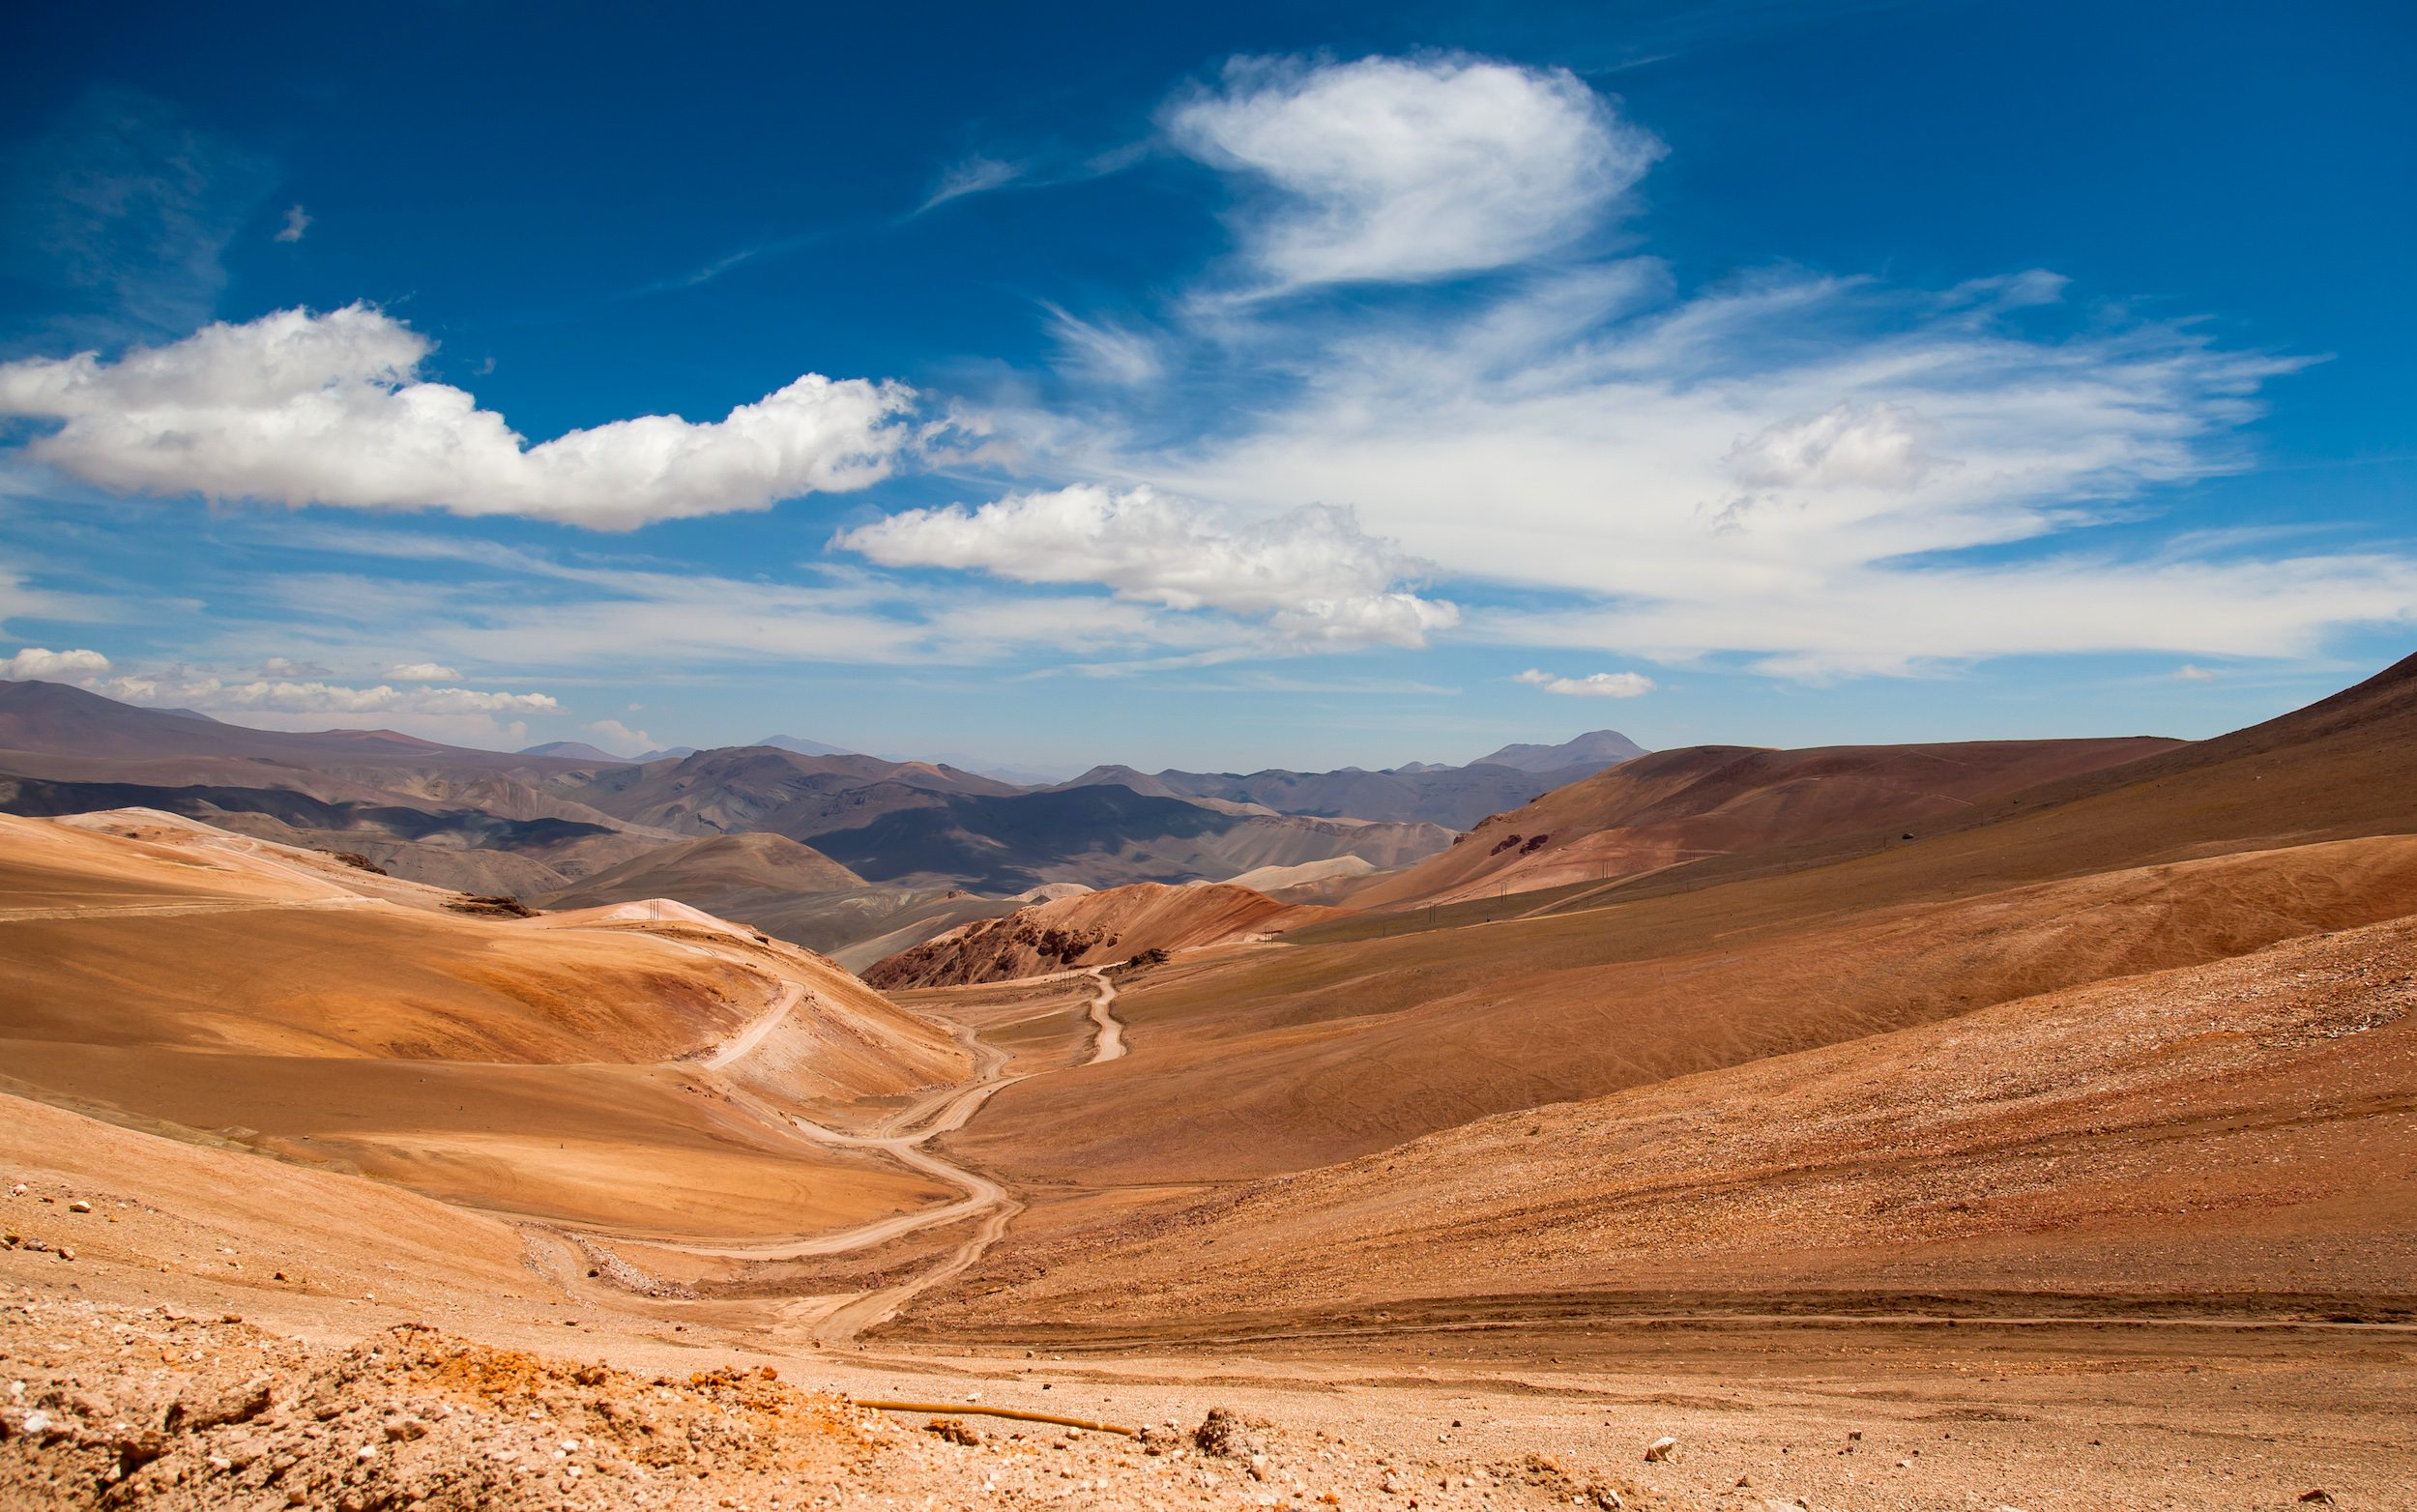 A zig-zag dusty road cutting through the dry, brown hills of the Atacama Desert